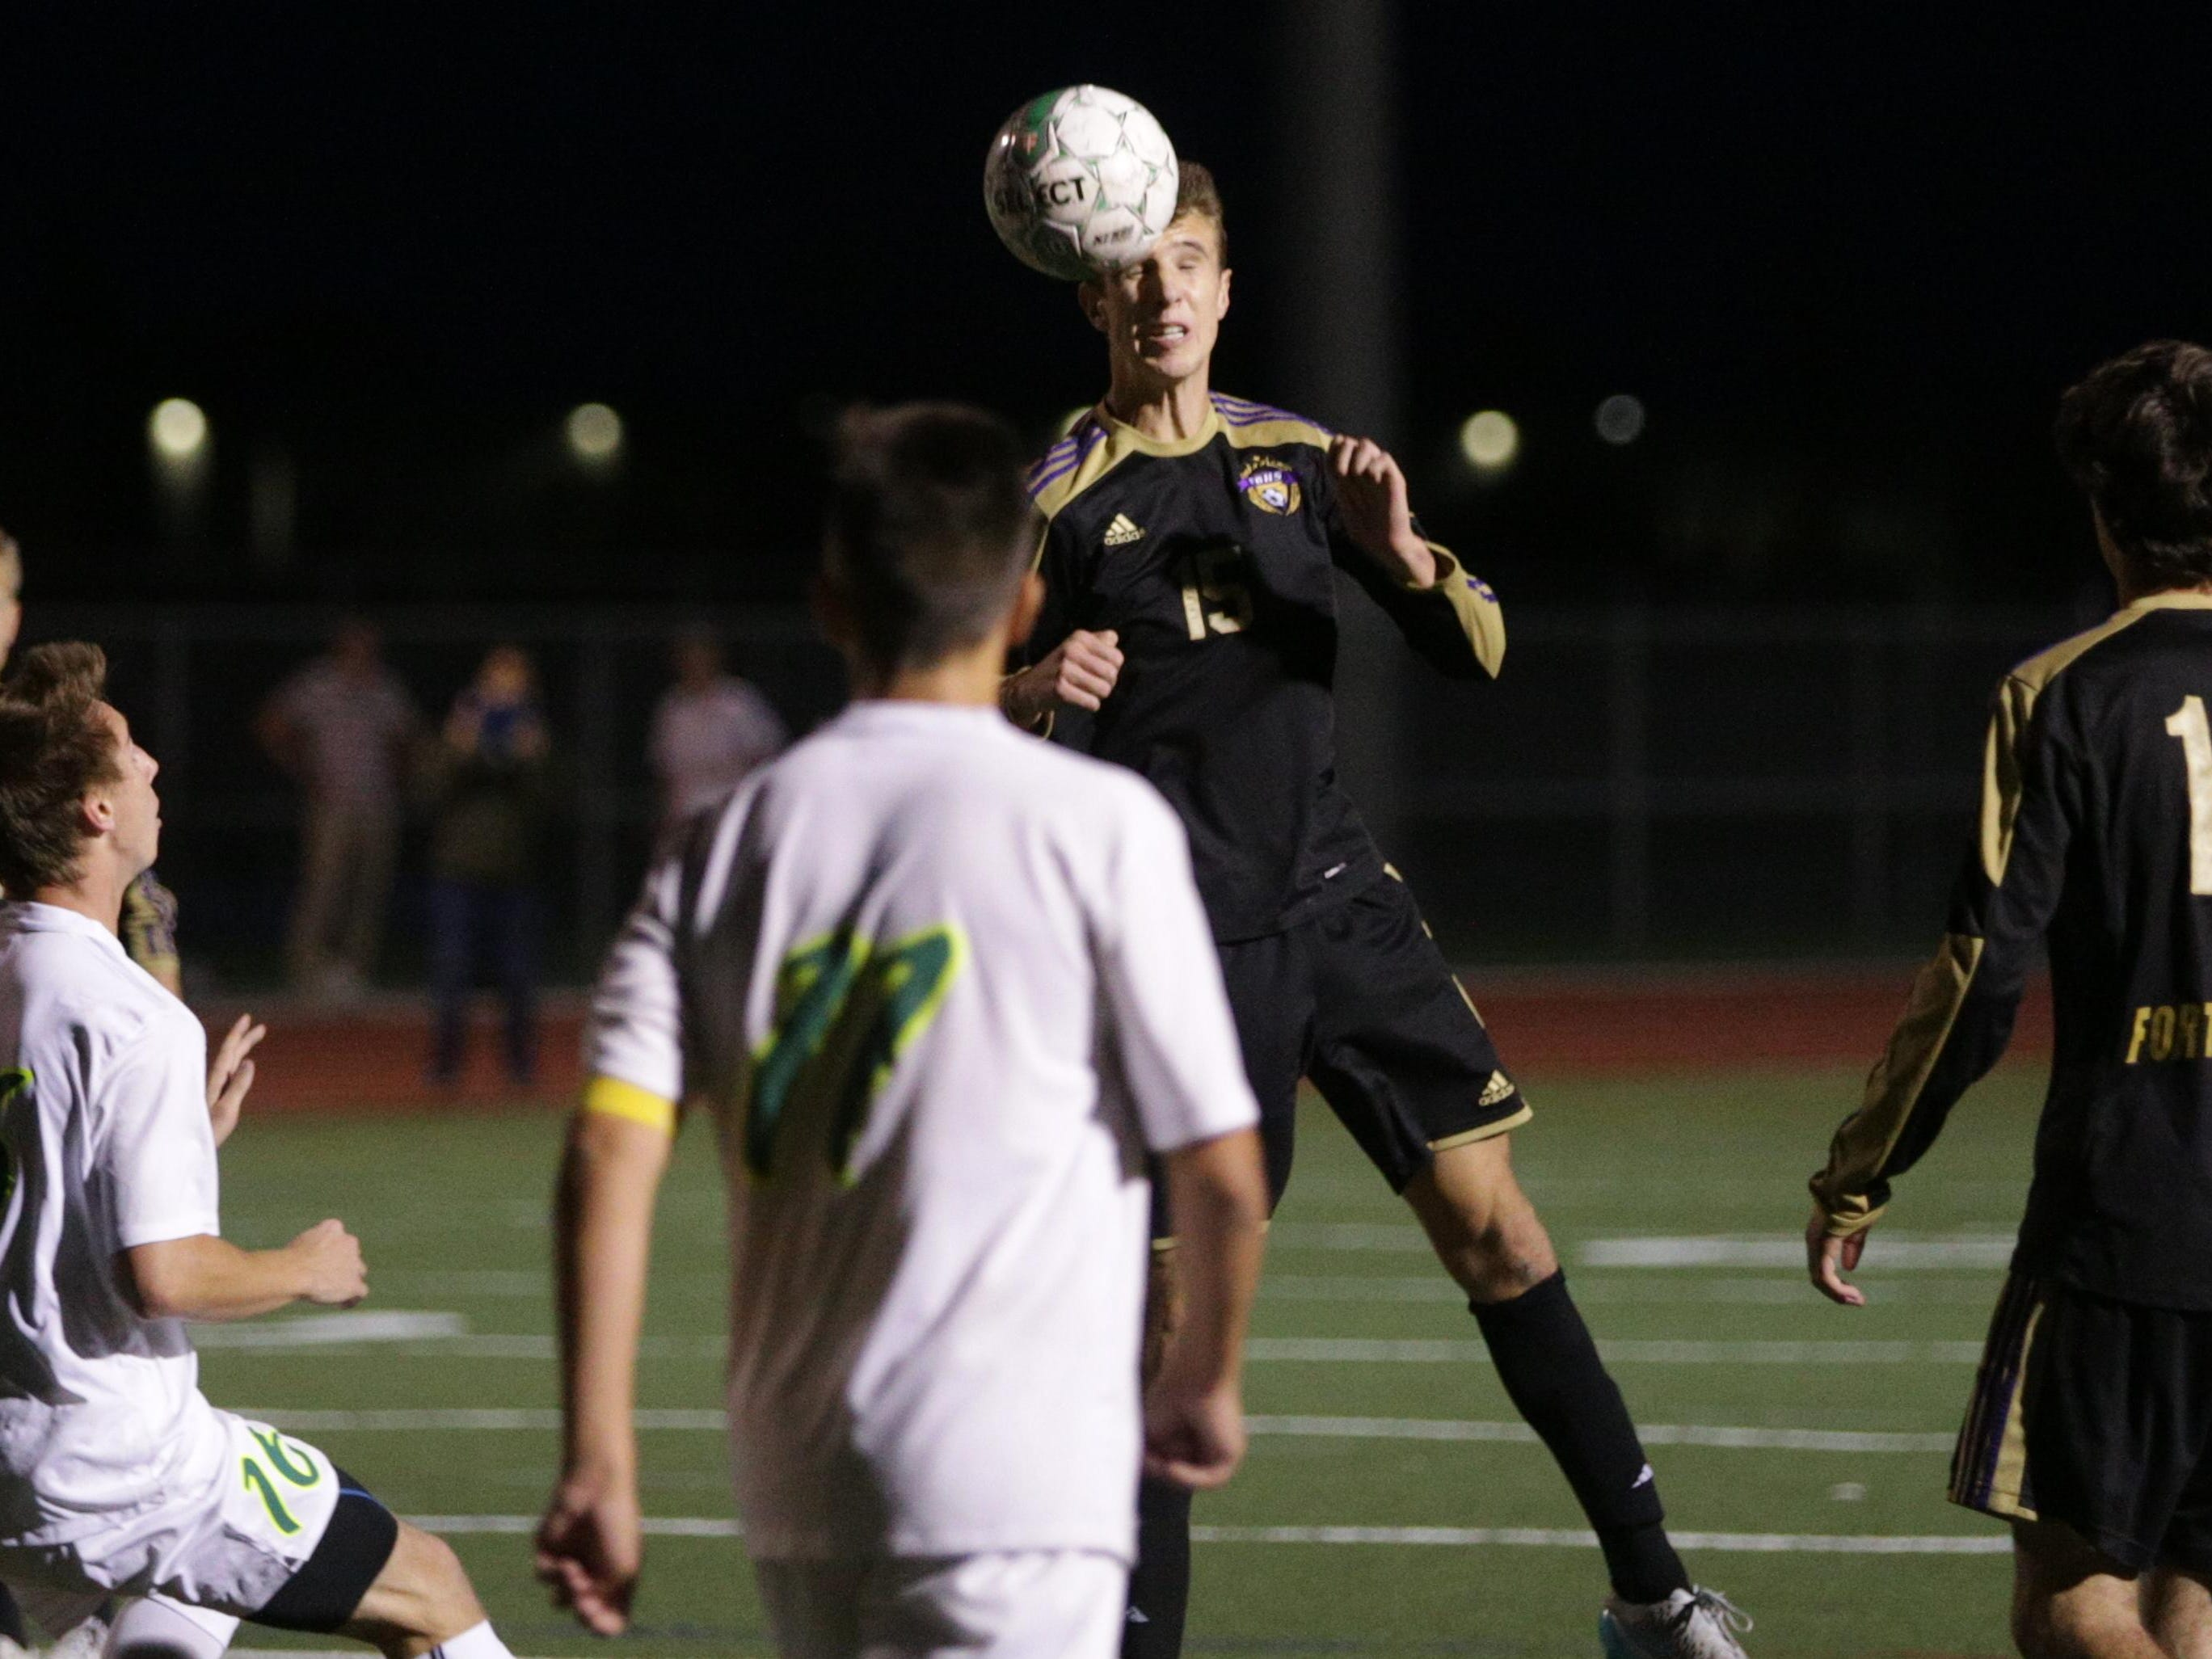 Fort Collins High School's Jake Rudel is fourth among area players in goals and second in assists.